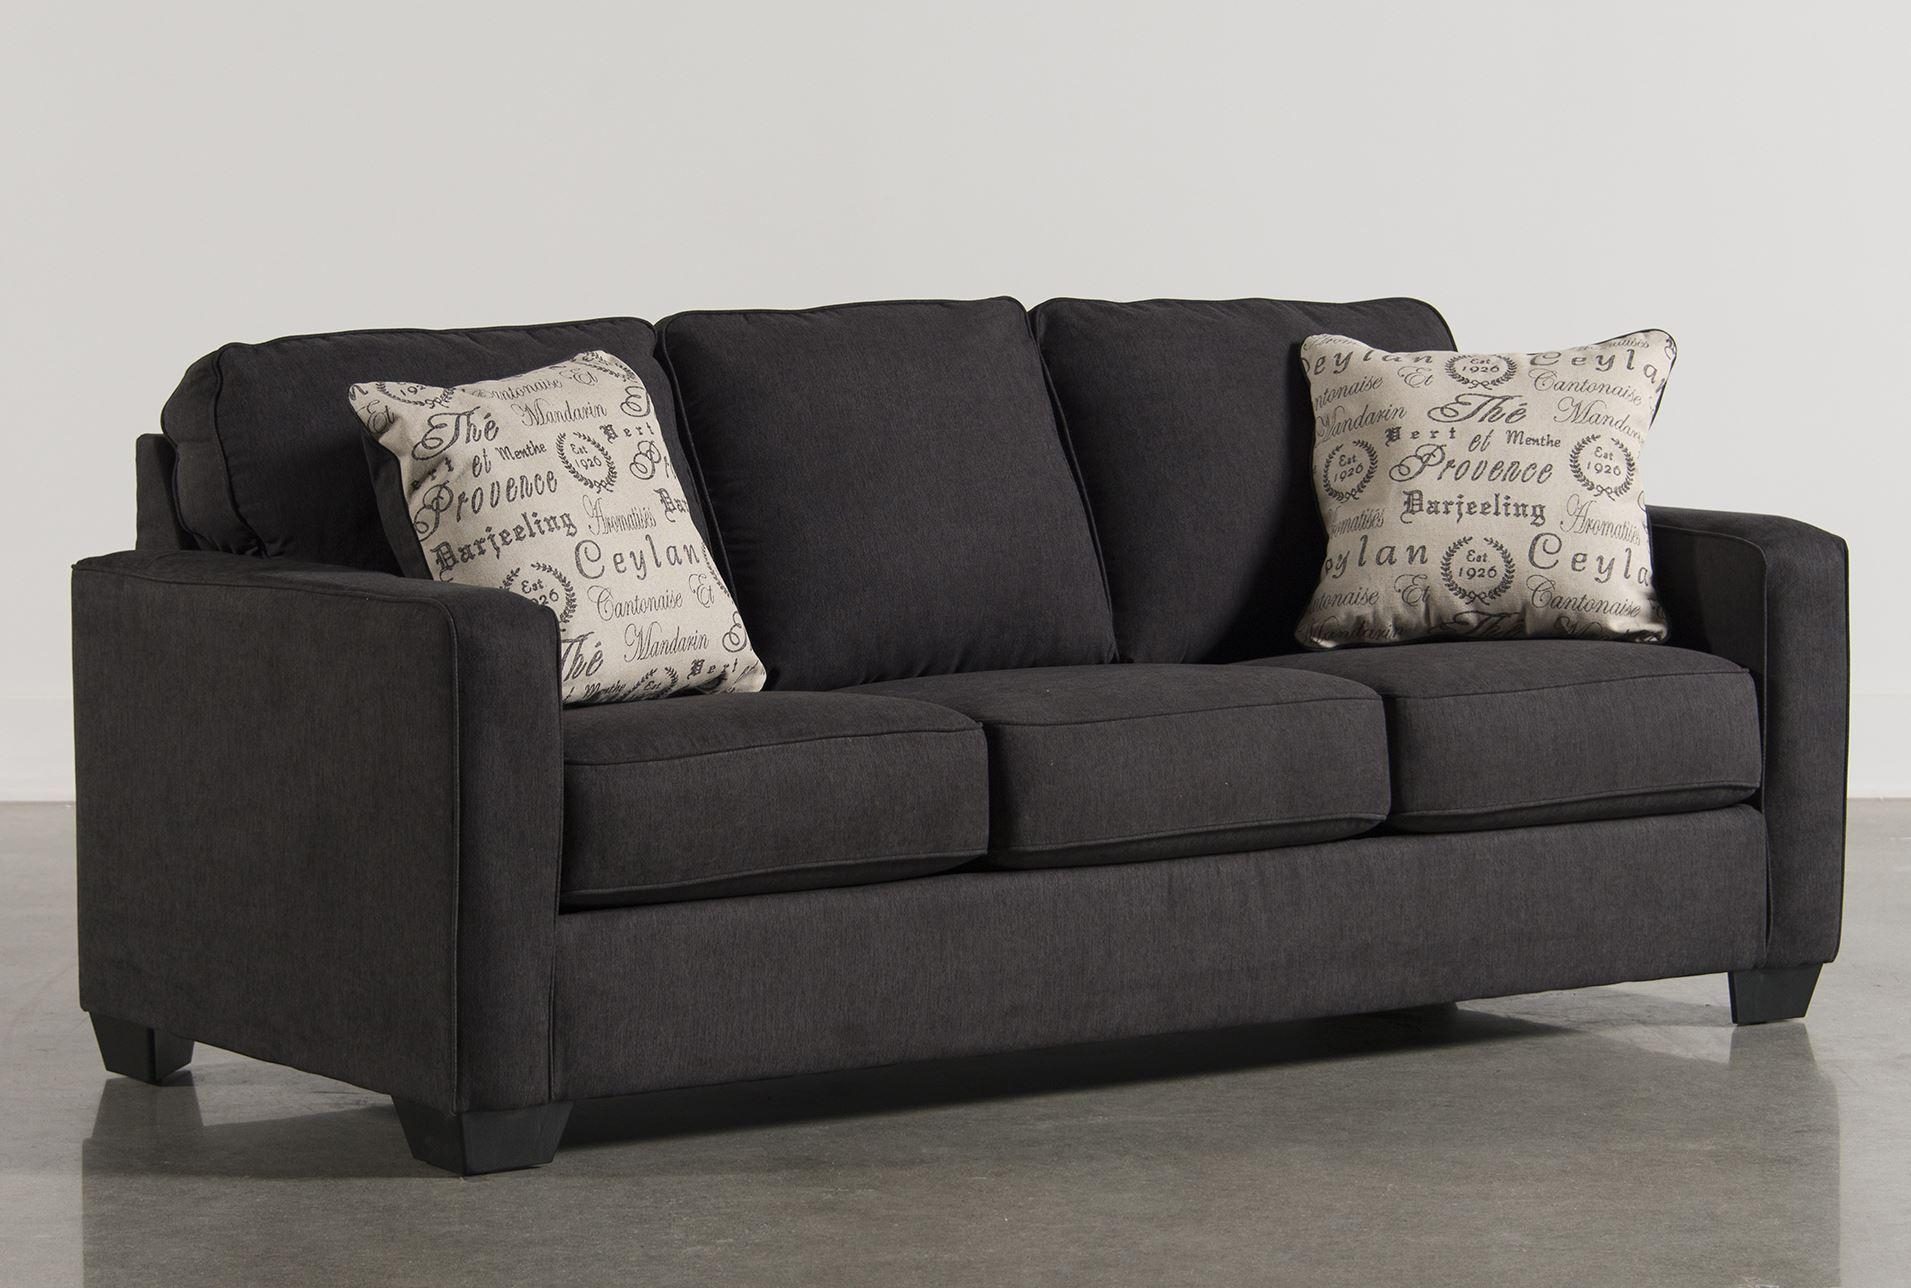 Sleeper Sofa Living Spaces – Ansugallery In Pier One Sleeper Sofas (View 2 of 20)